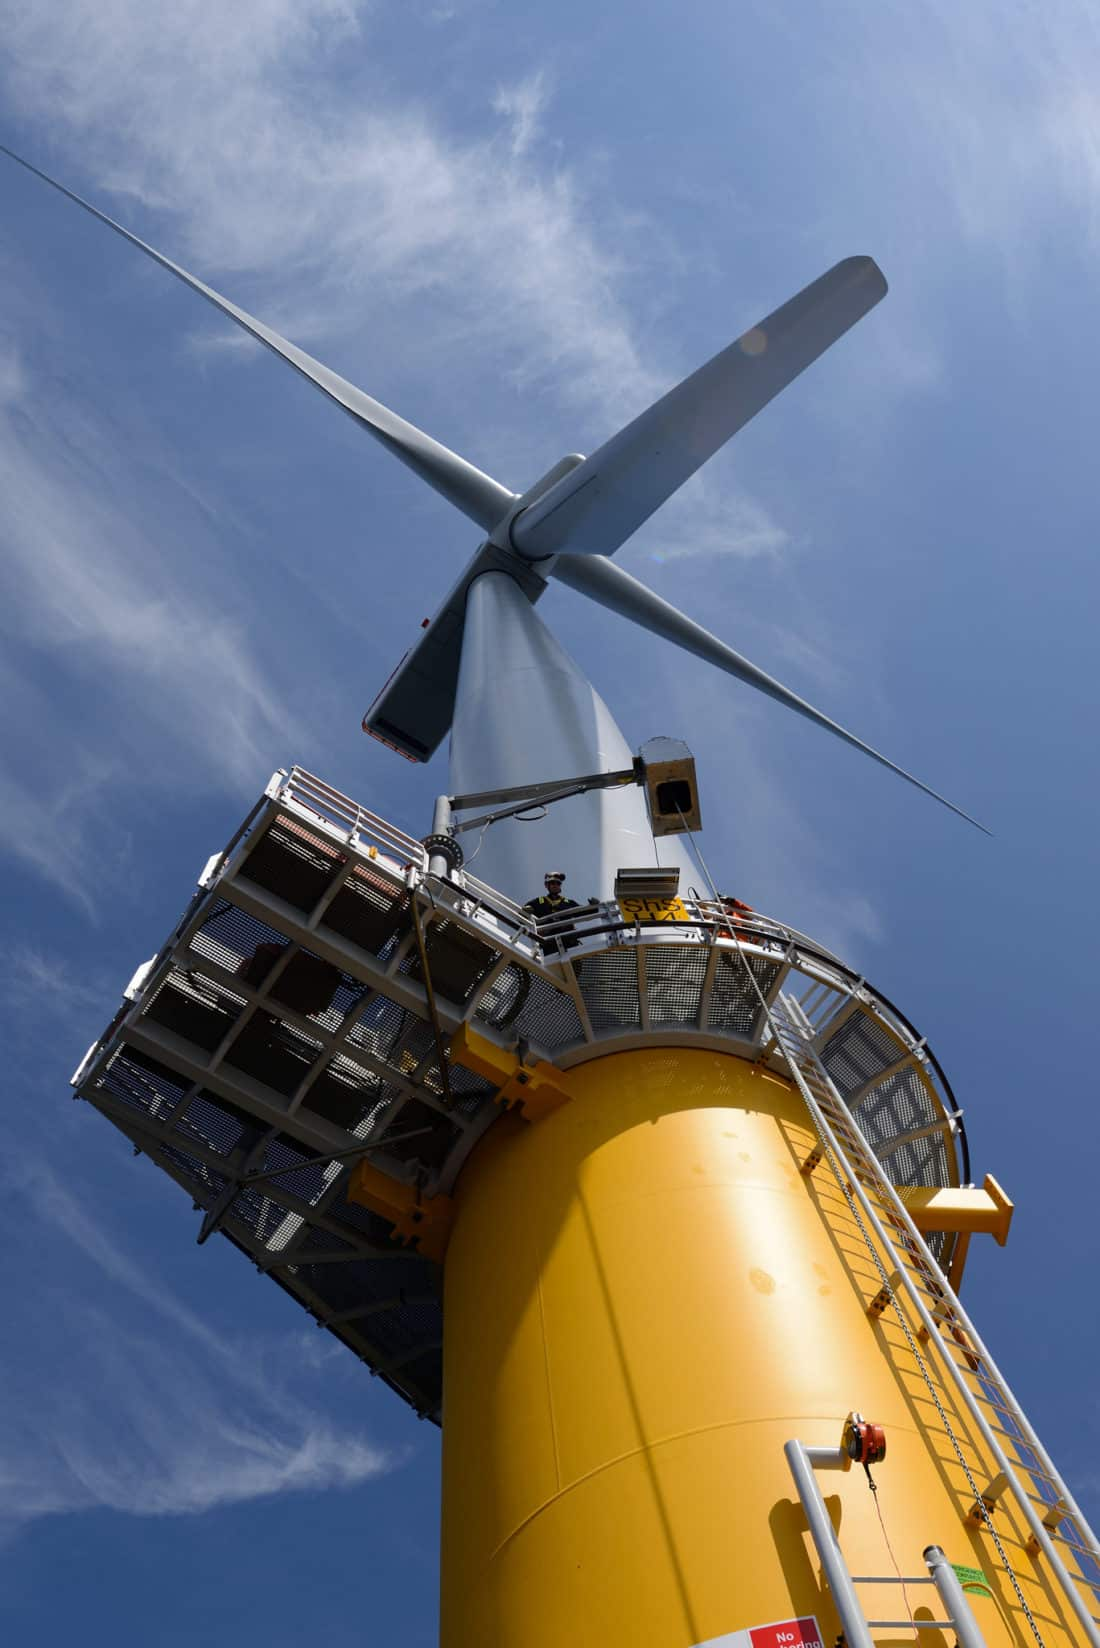 Sheringham Shoal Offshore Wind Farm courtesy NHD-INFO via Fklickr (CC BY SA< 2.0 License)